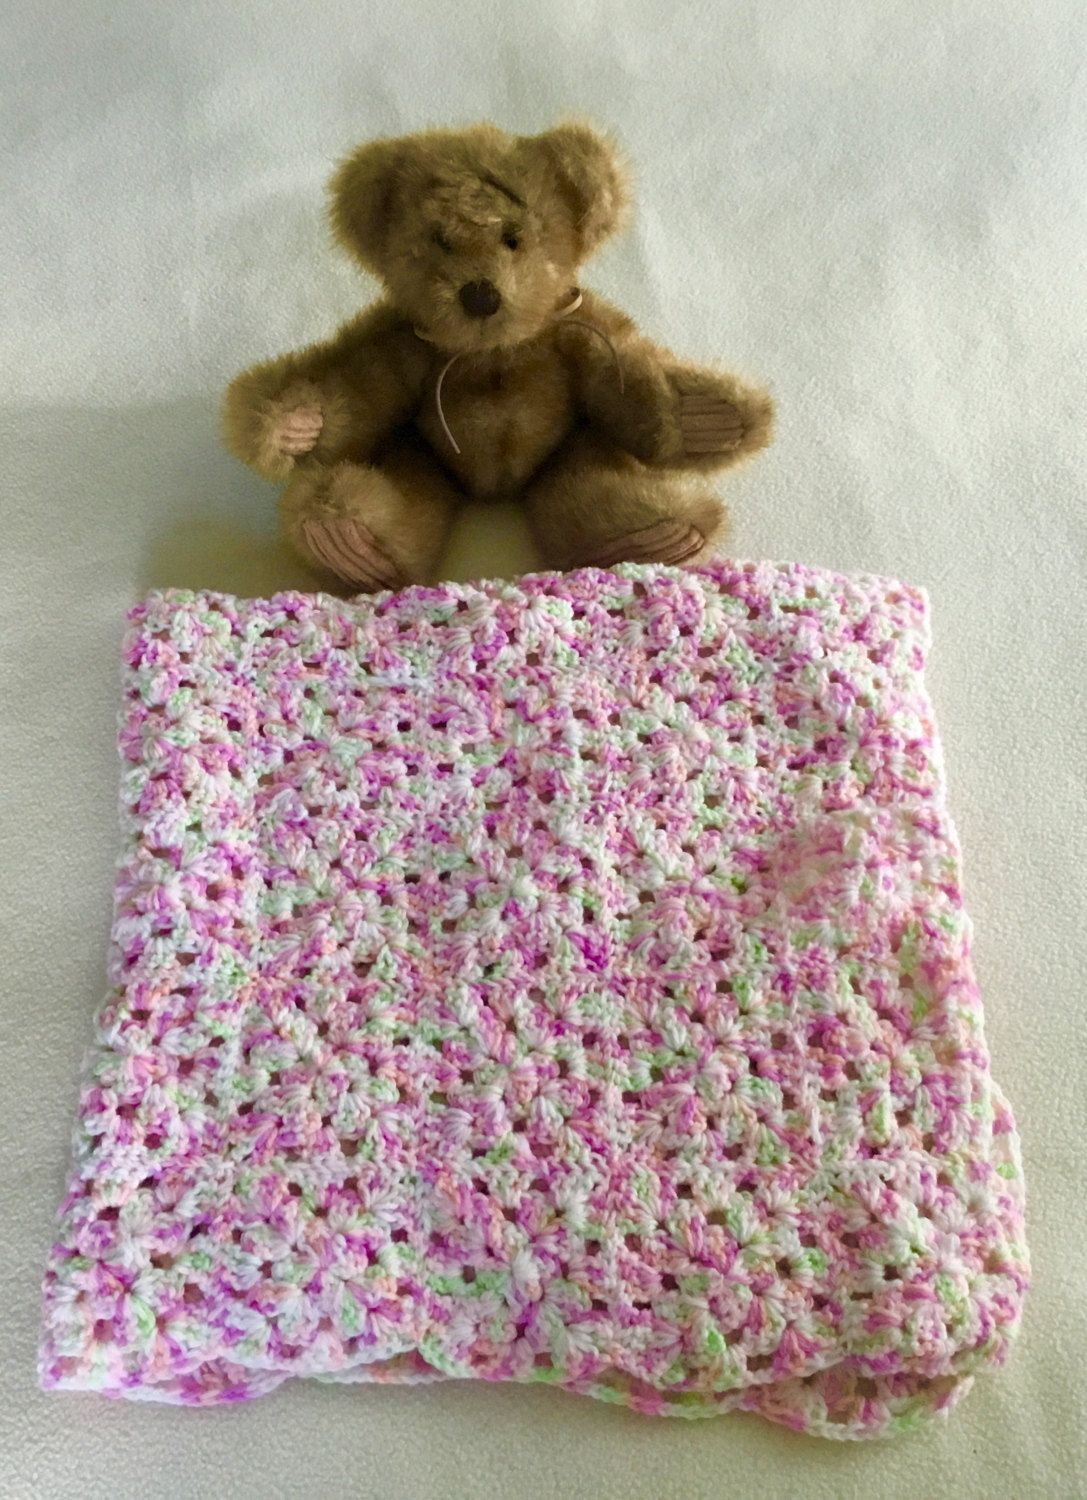 Hand-crocheted 4-color speckled granny squares baby blanket 27\